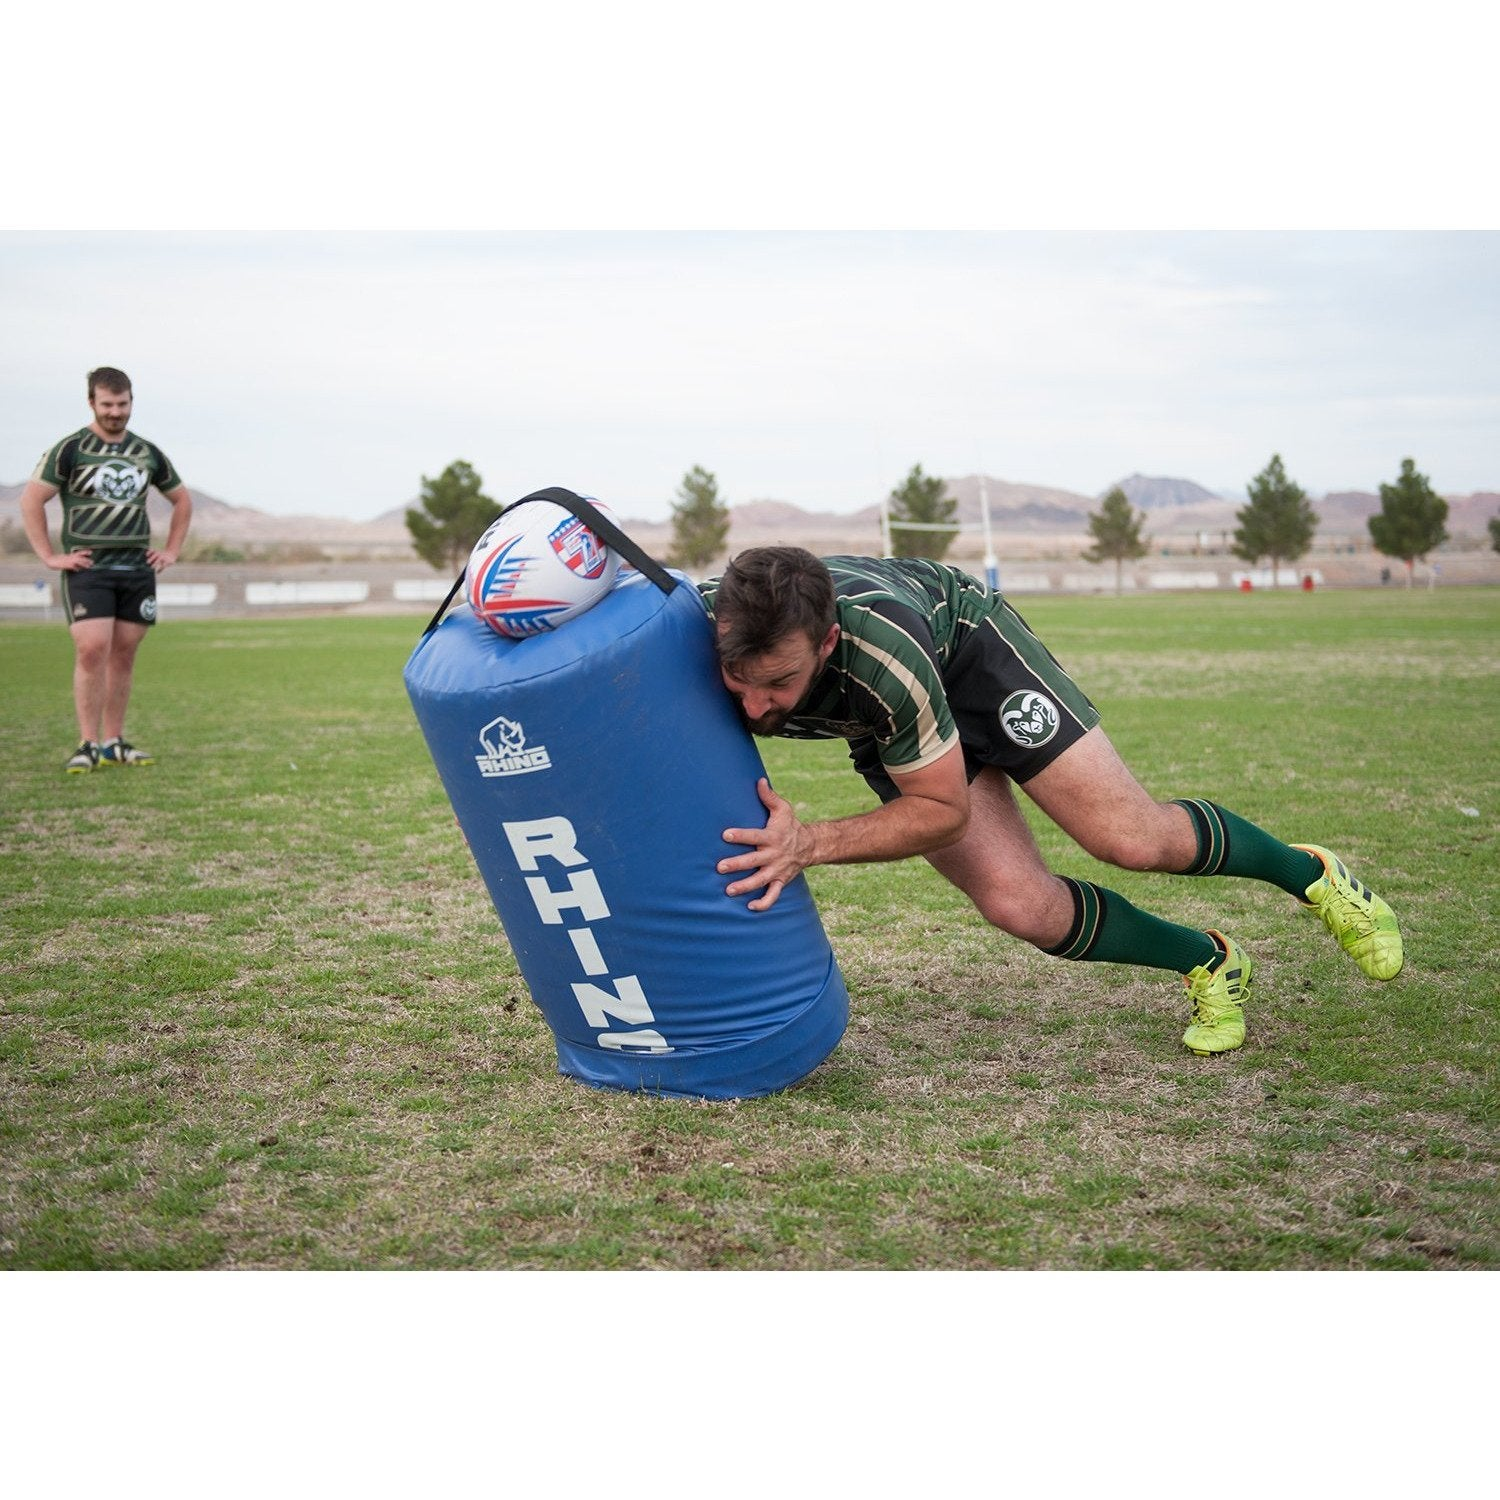 Rhino Rugby Low Tackle Bag - www.therugbyshop.com